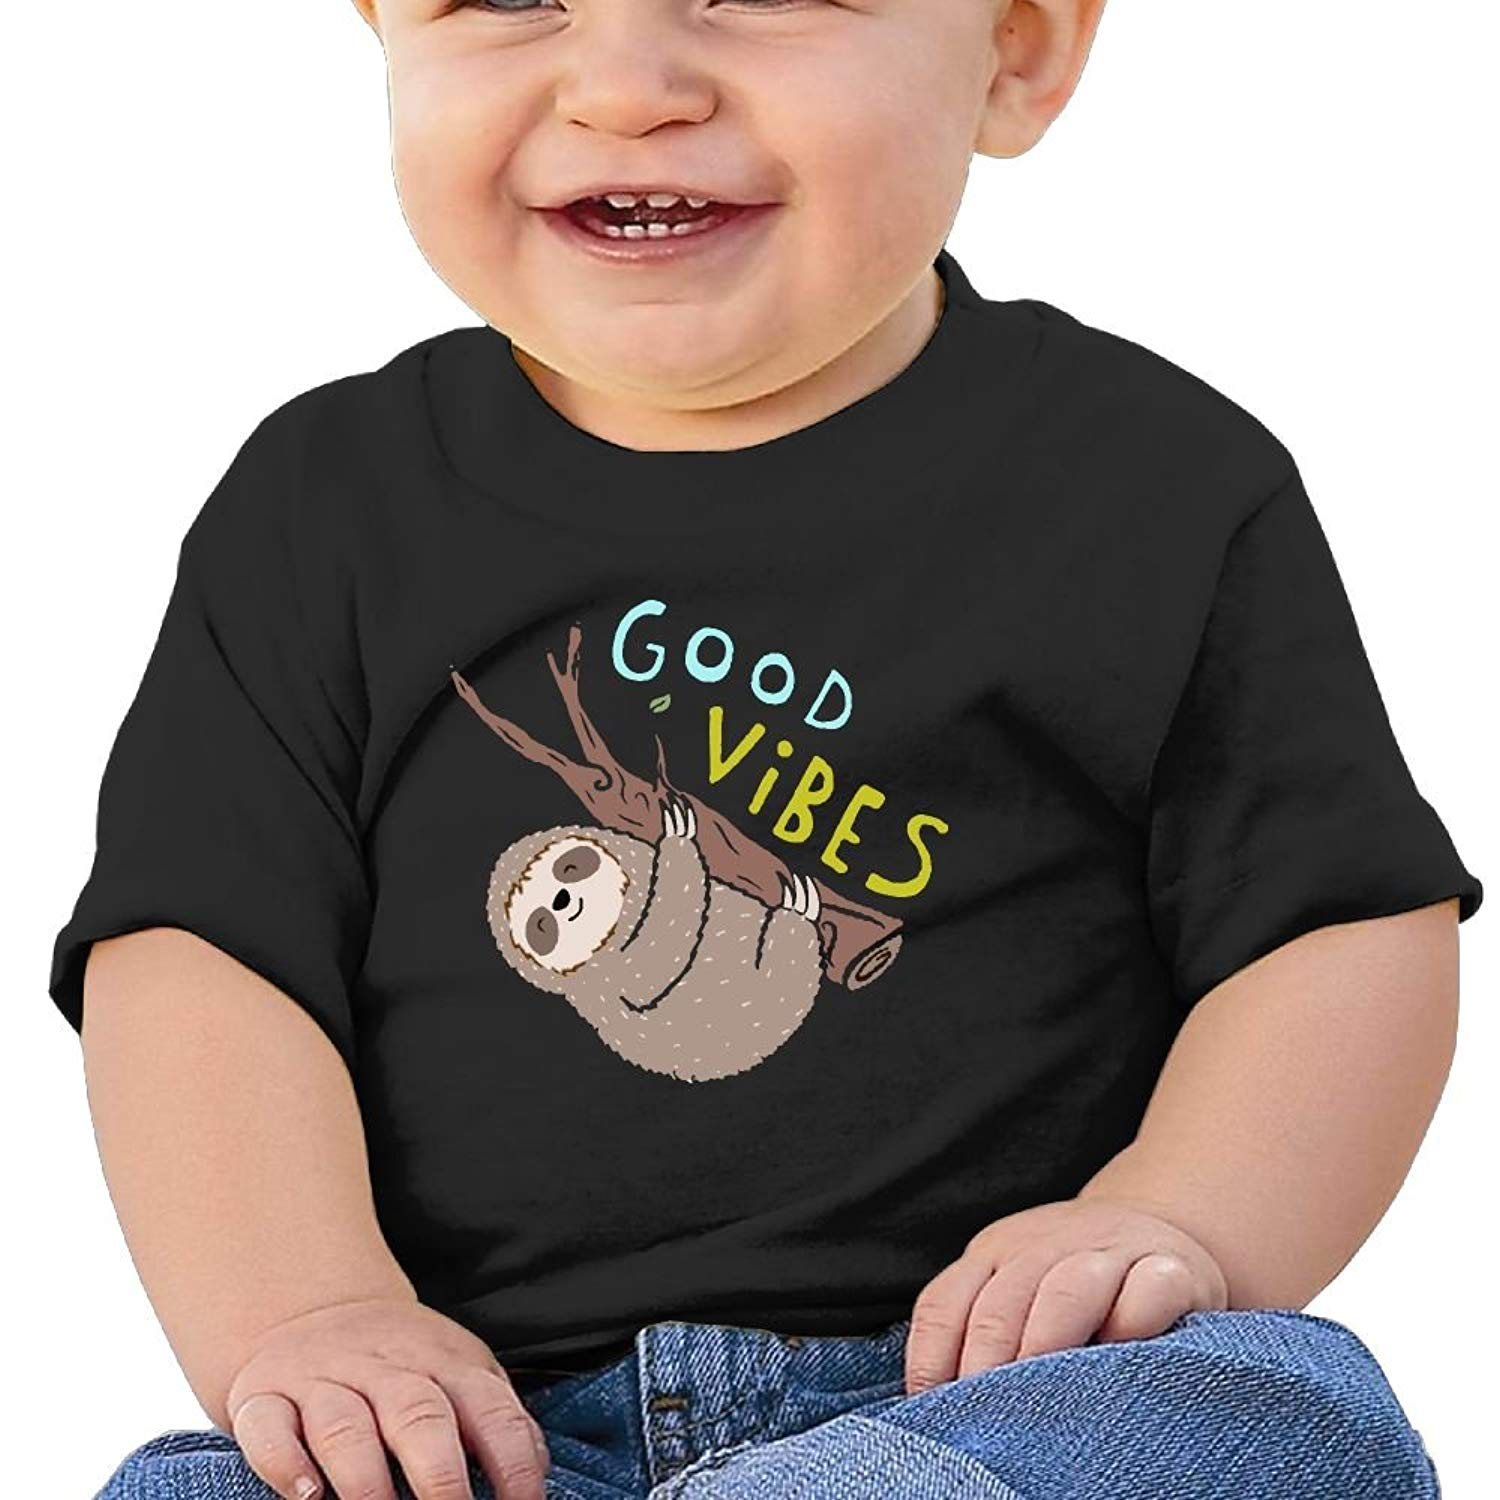 b2a268ec9 Get Quotations · YUEskd Good Vibes Funny Sloth Baby Boys Girls Summer Short  Sleeve Crew Neck T-Shirt